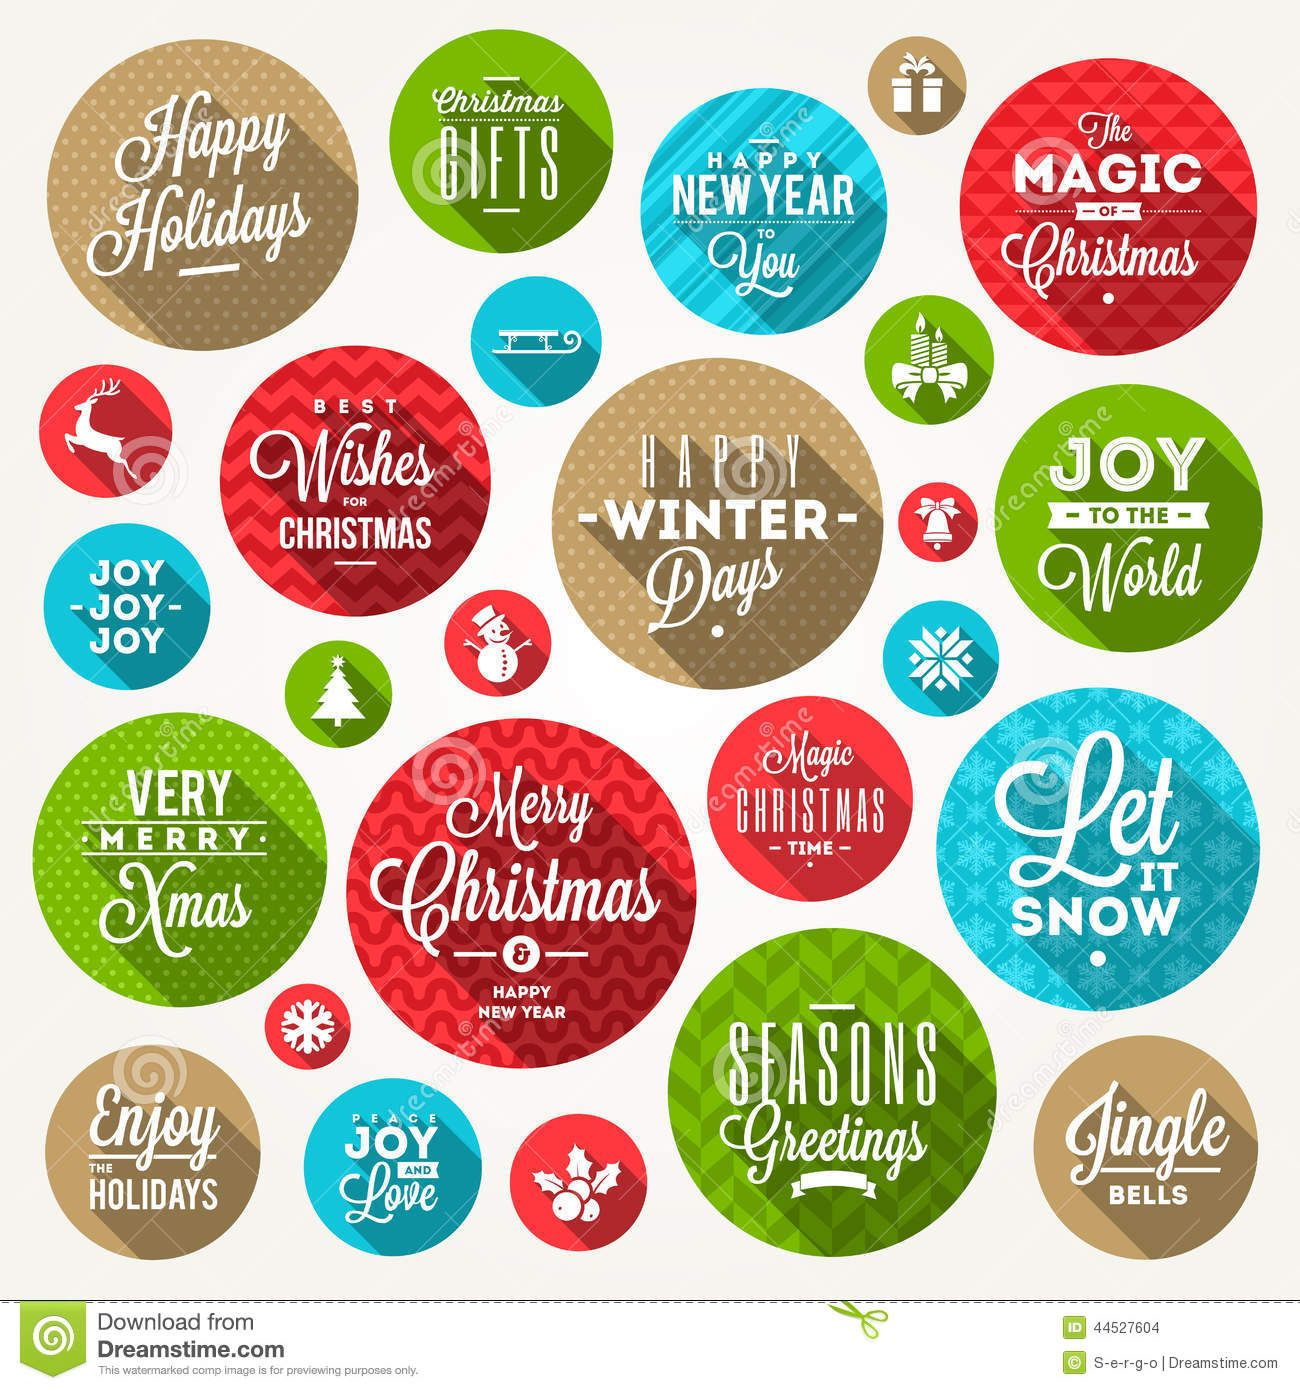 christmas phrases - Google Search